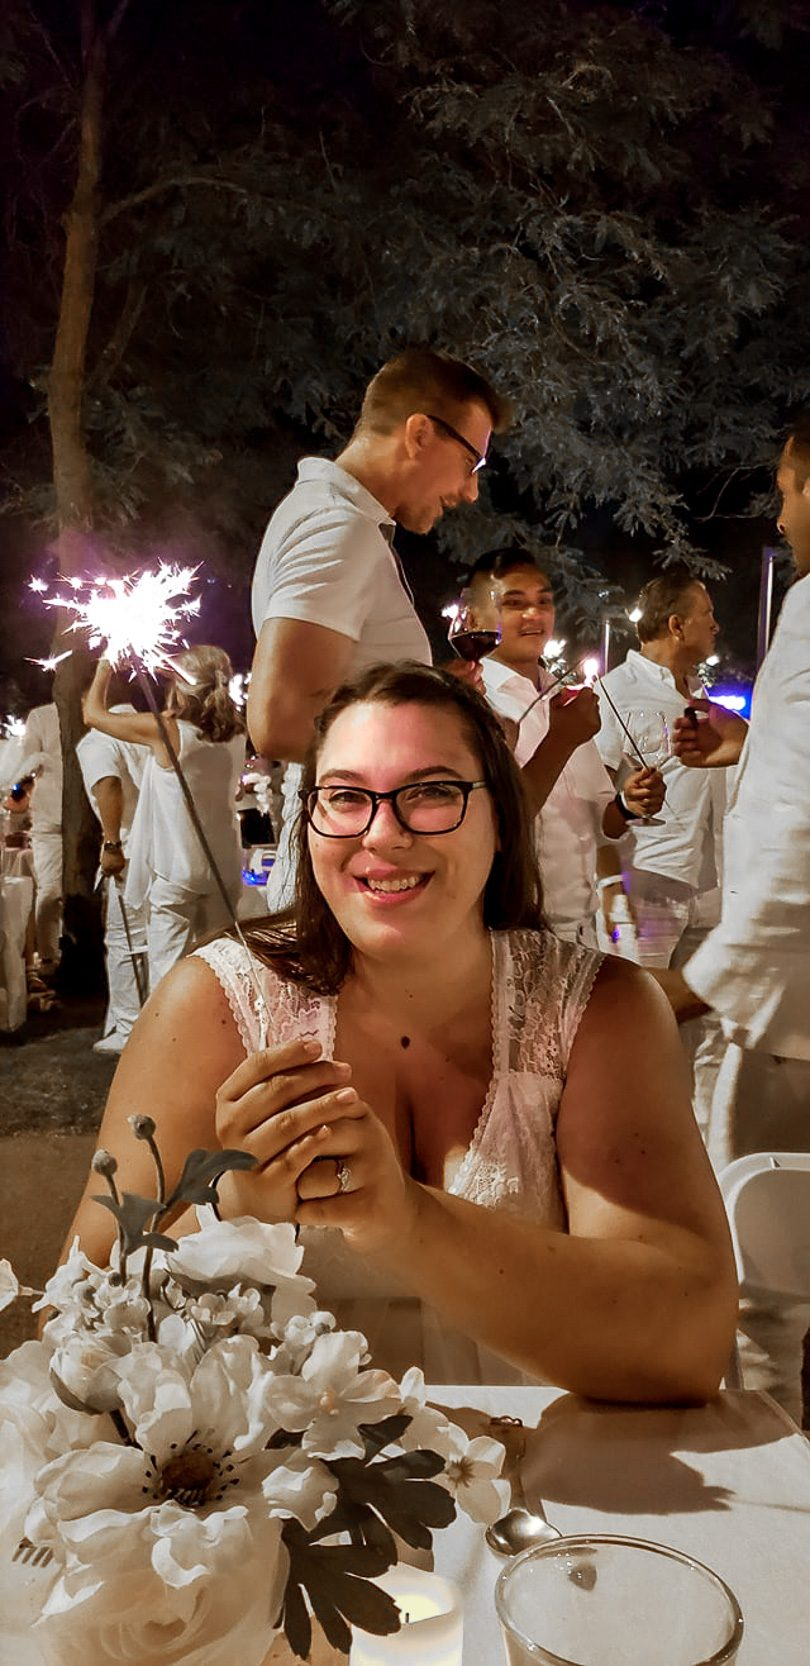 Ashley with Sparklers at Dîner en Blanc Chicago 2018